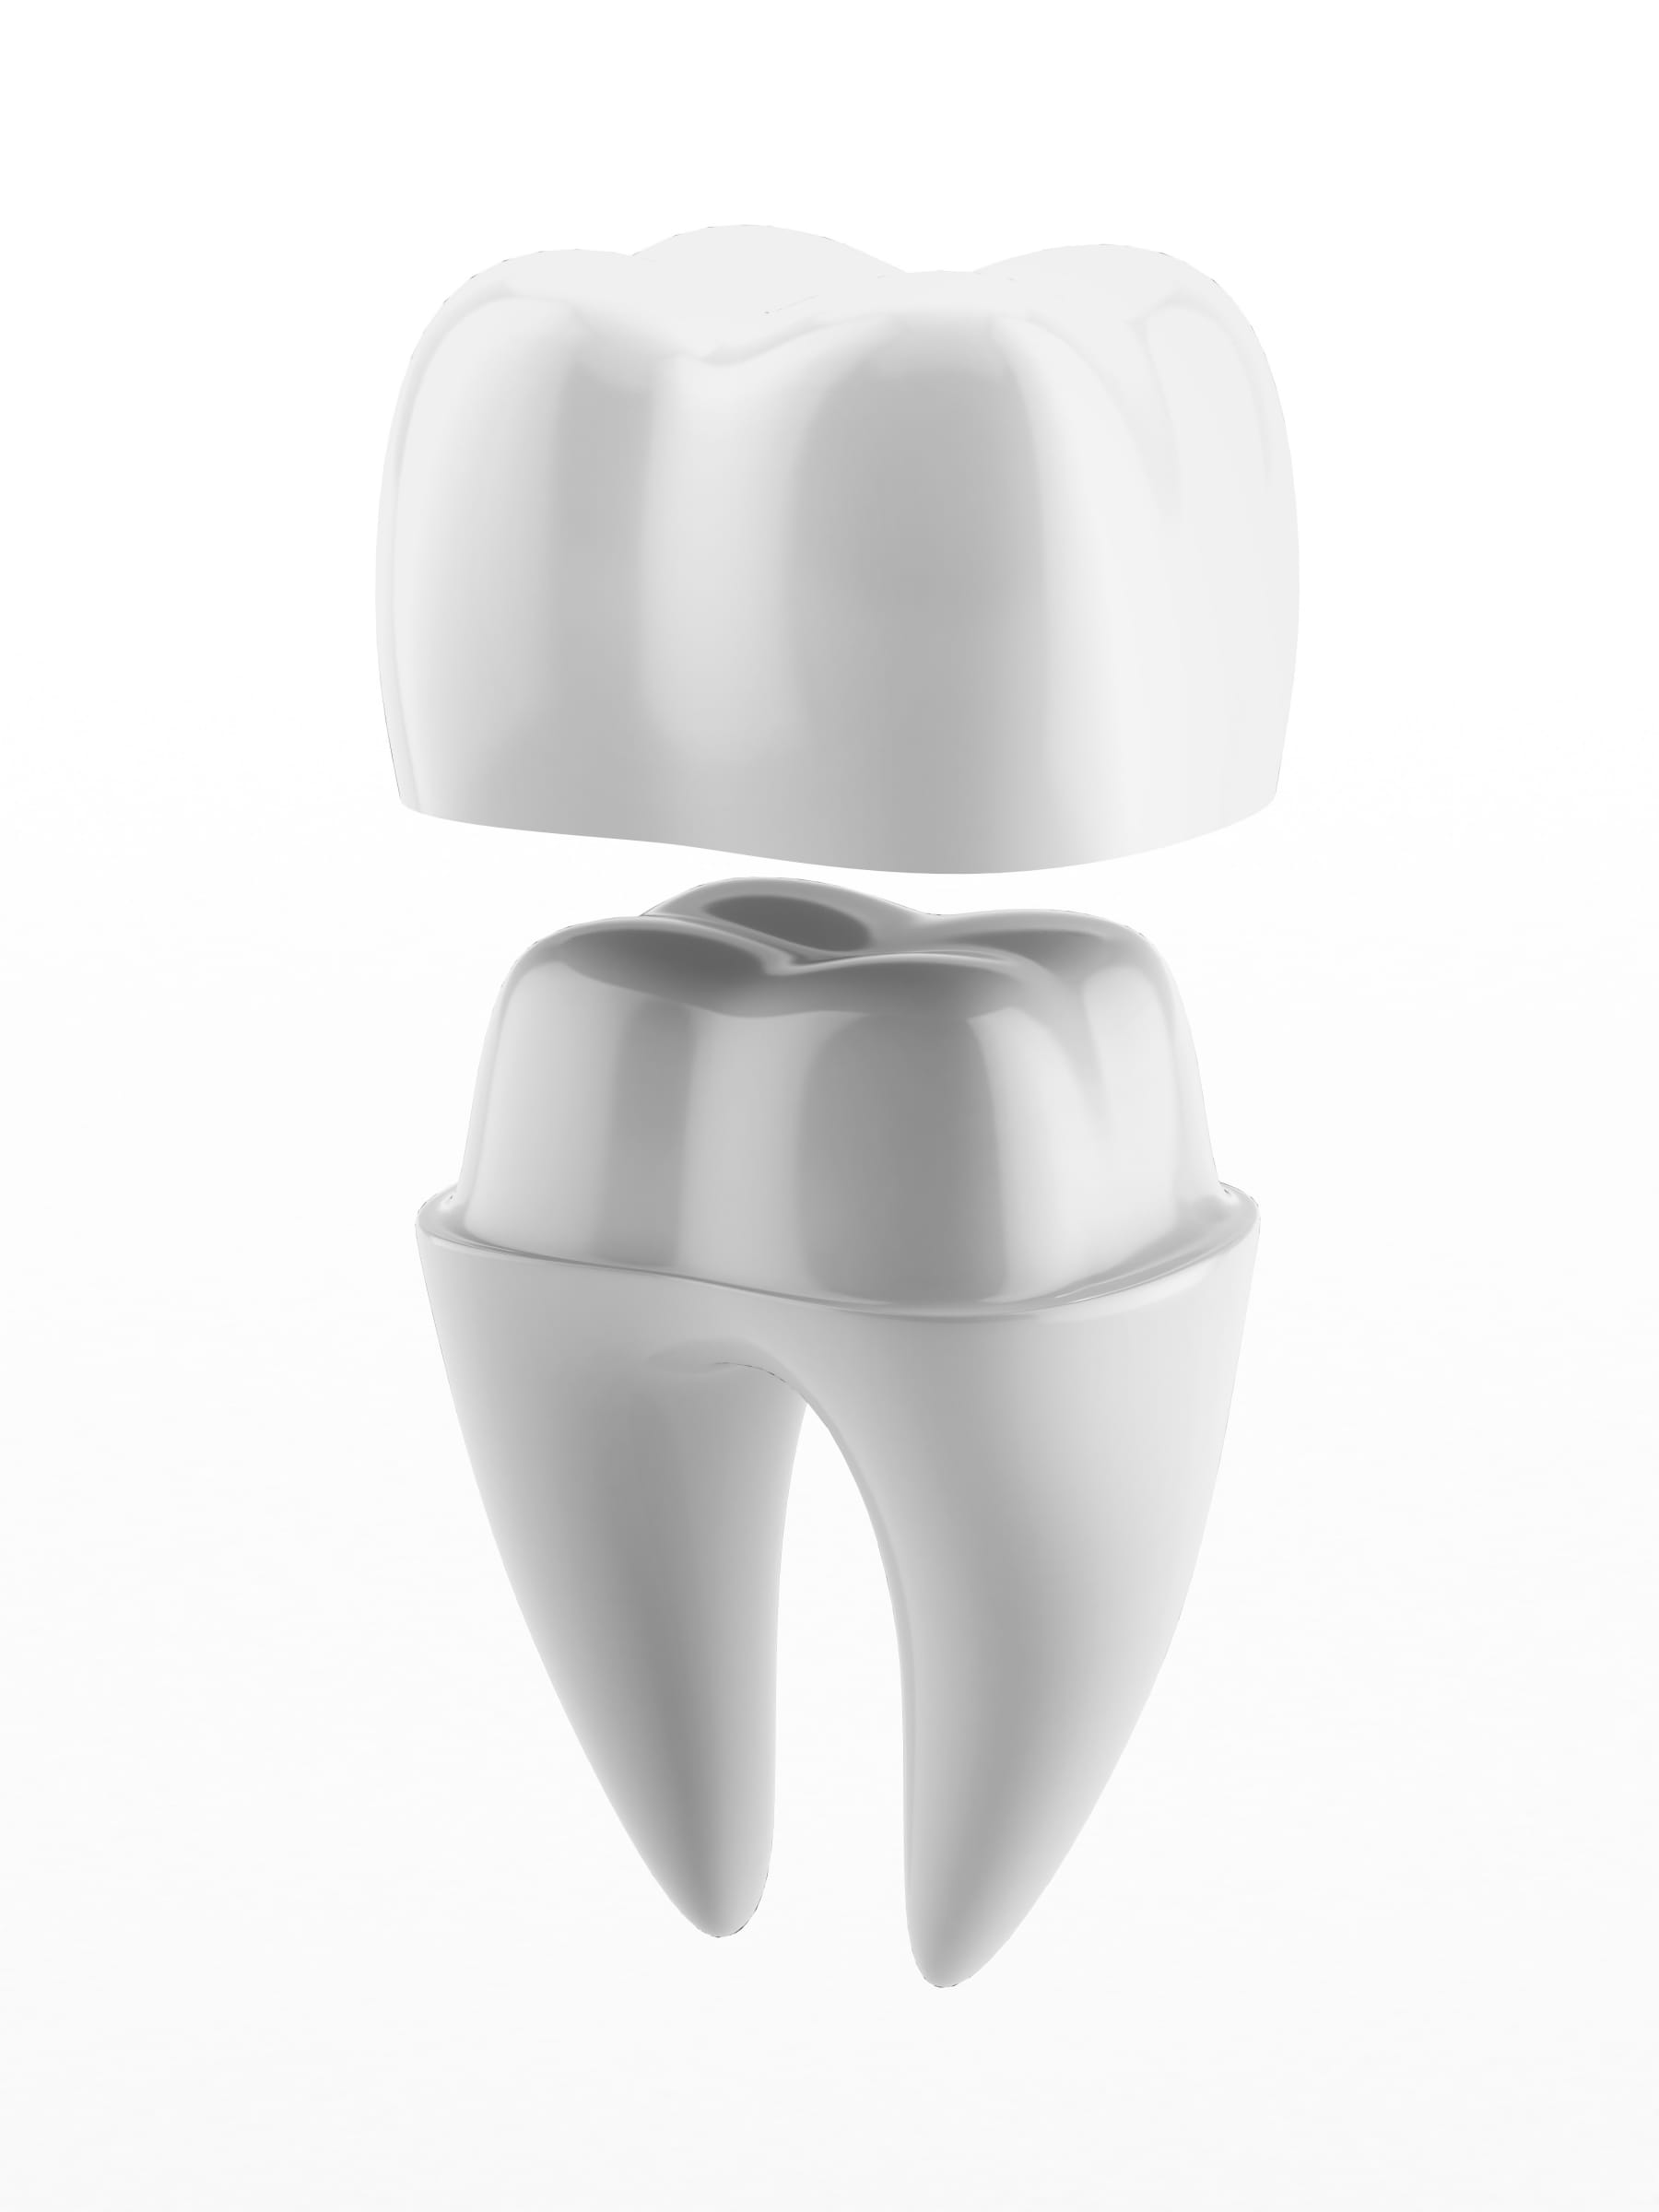 CEREC 3D - Technologies